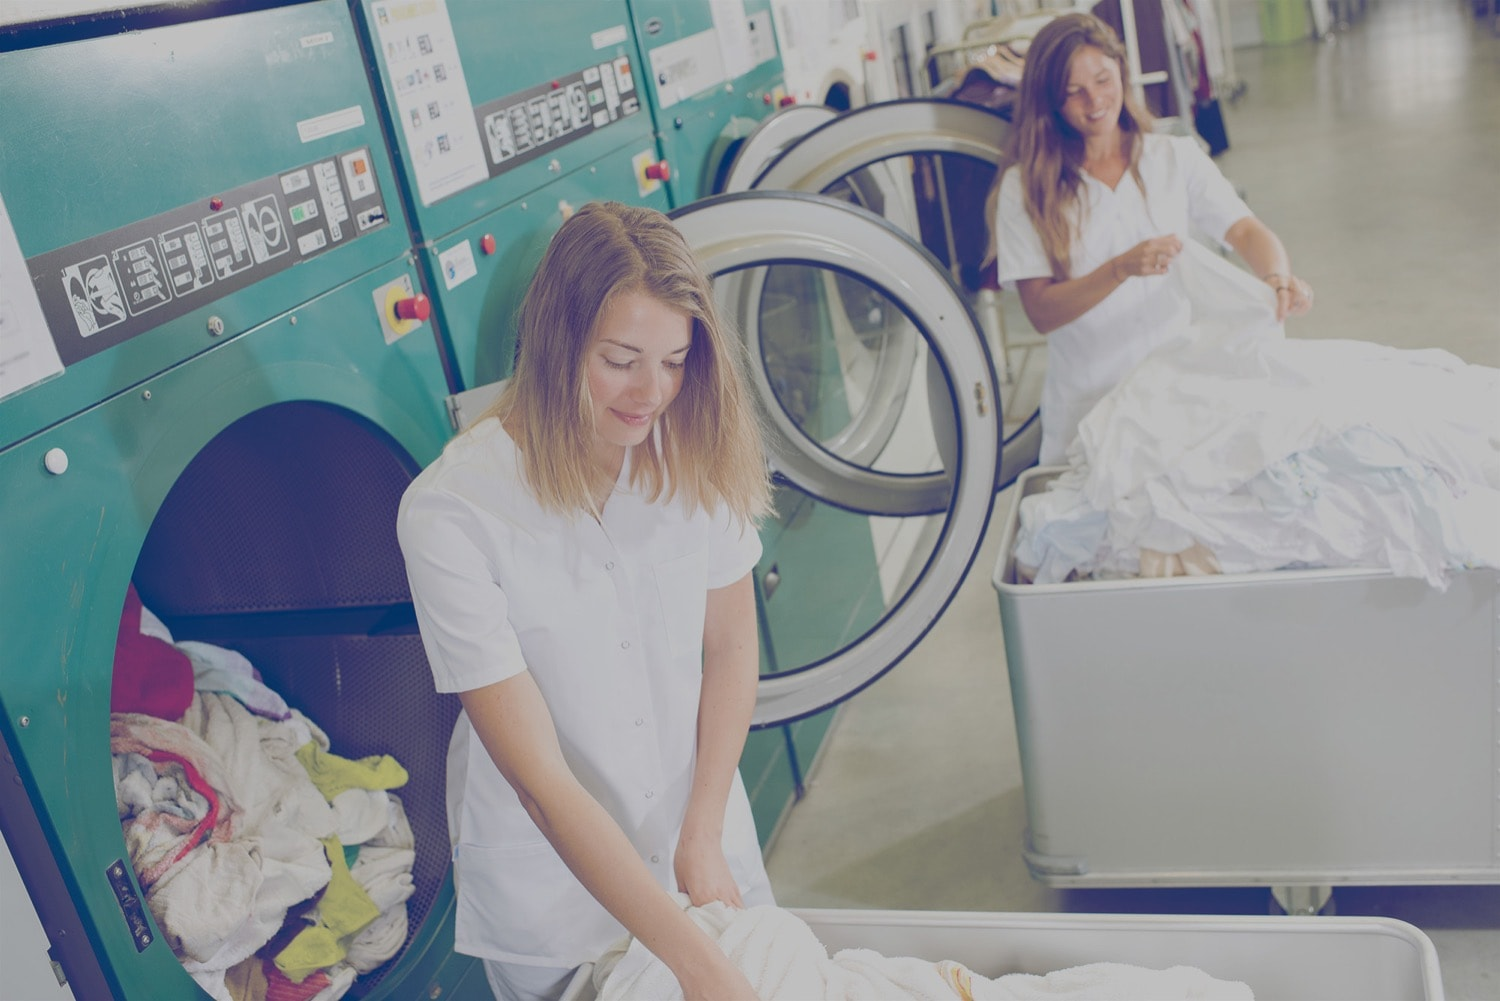 Two workers in a laundry room in a hotel. They are grabbing linens to put in the dryer.